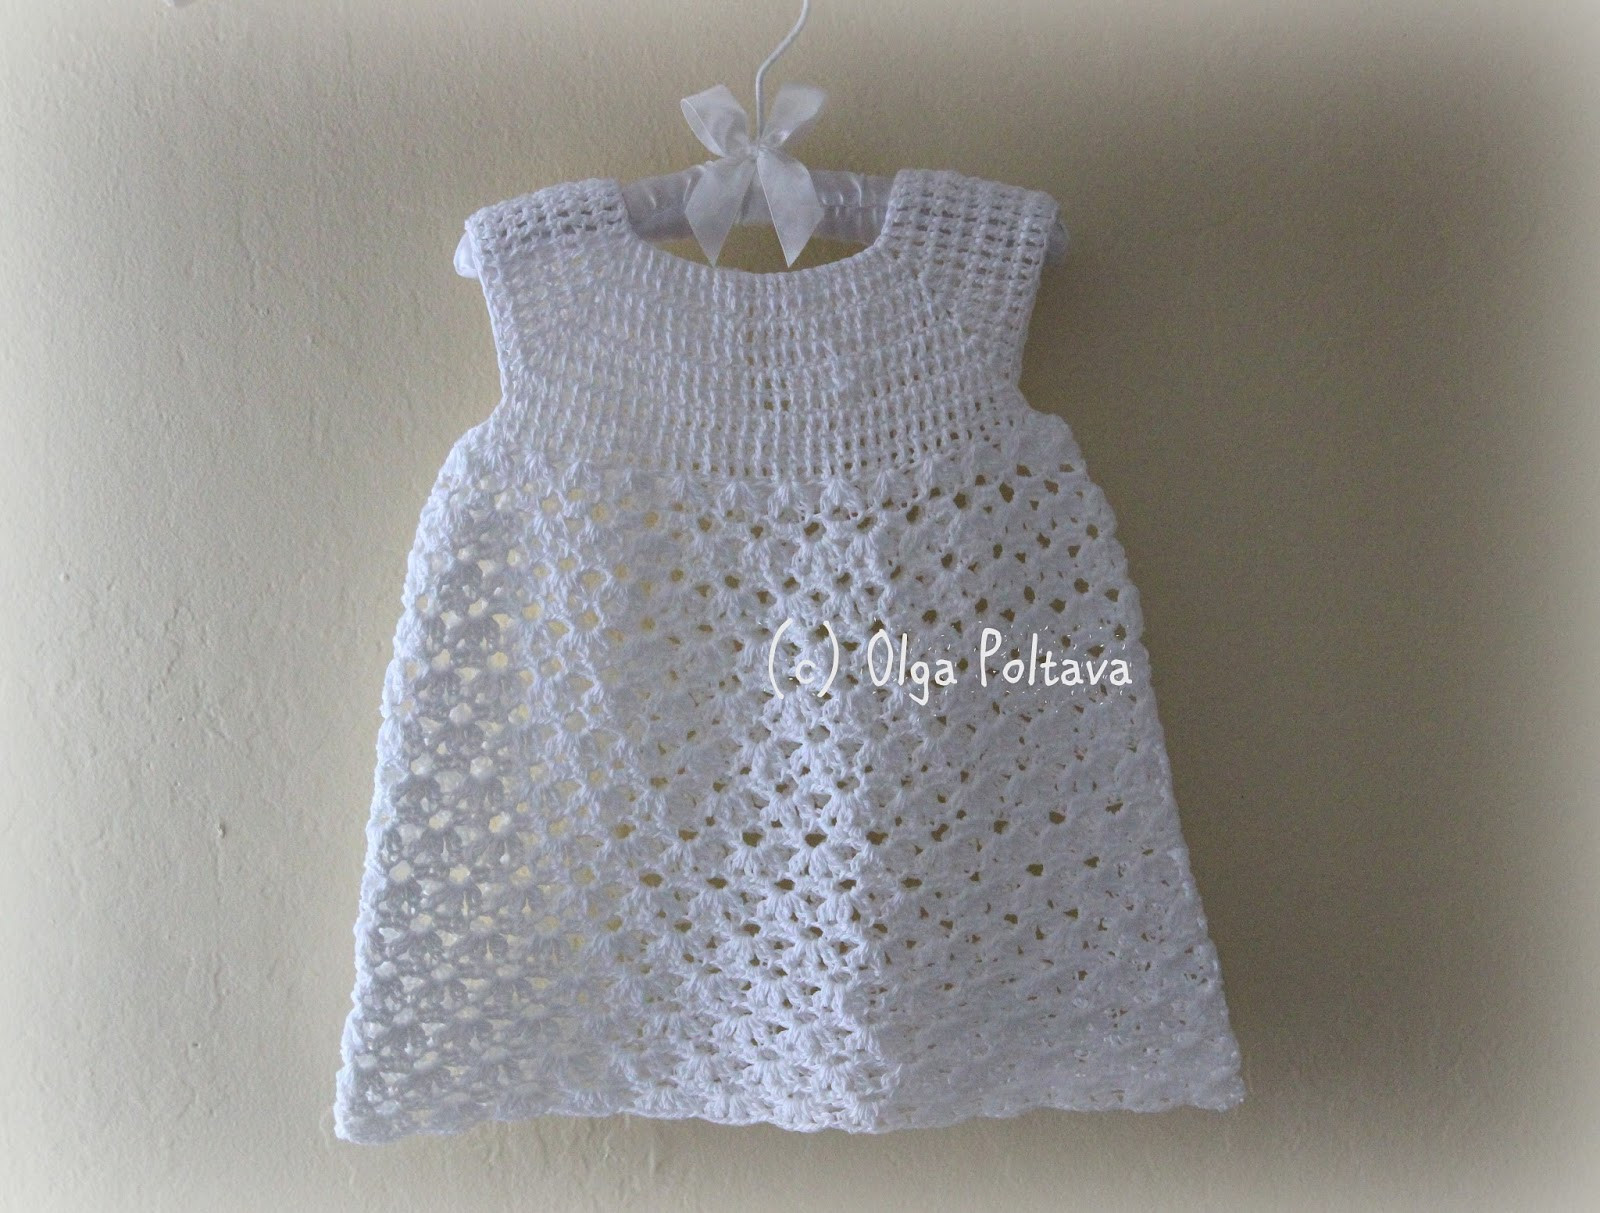 Crochet Baby Clothing Awesome Lacy Crochet Two New Patterns Baby Dress and Girls Hat Of Amazing 44 Ideas Crochet Baby Clothing